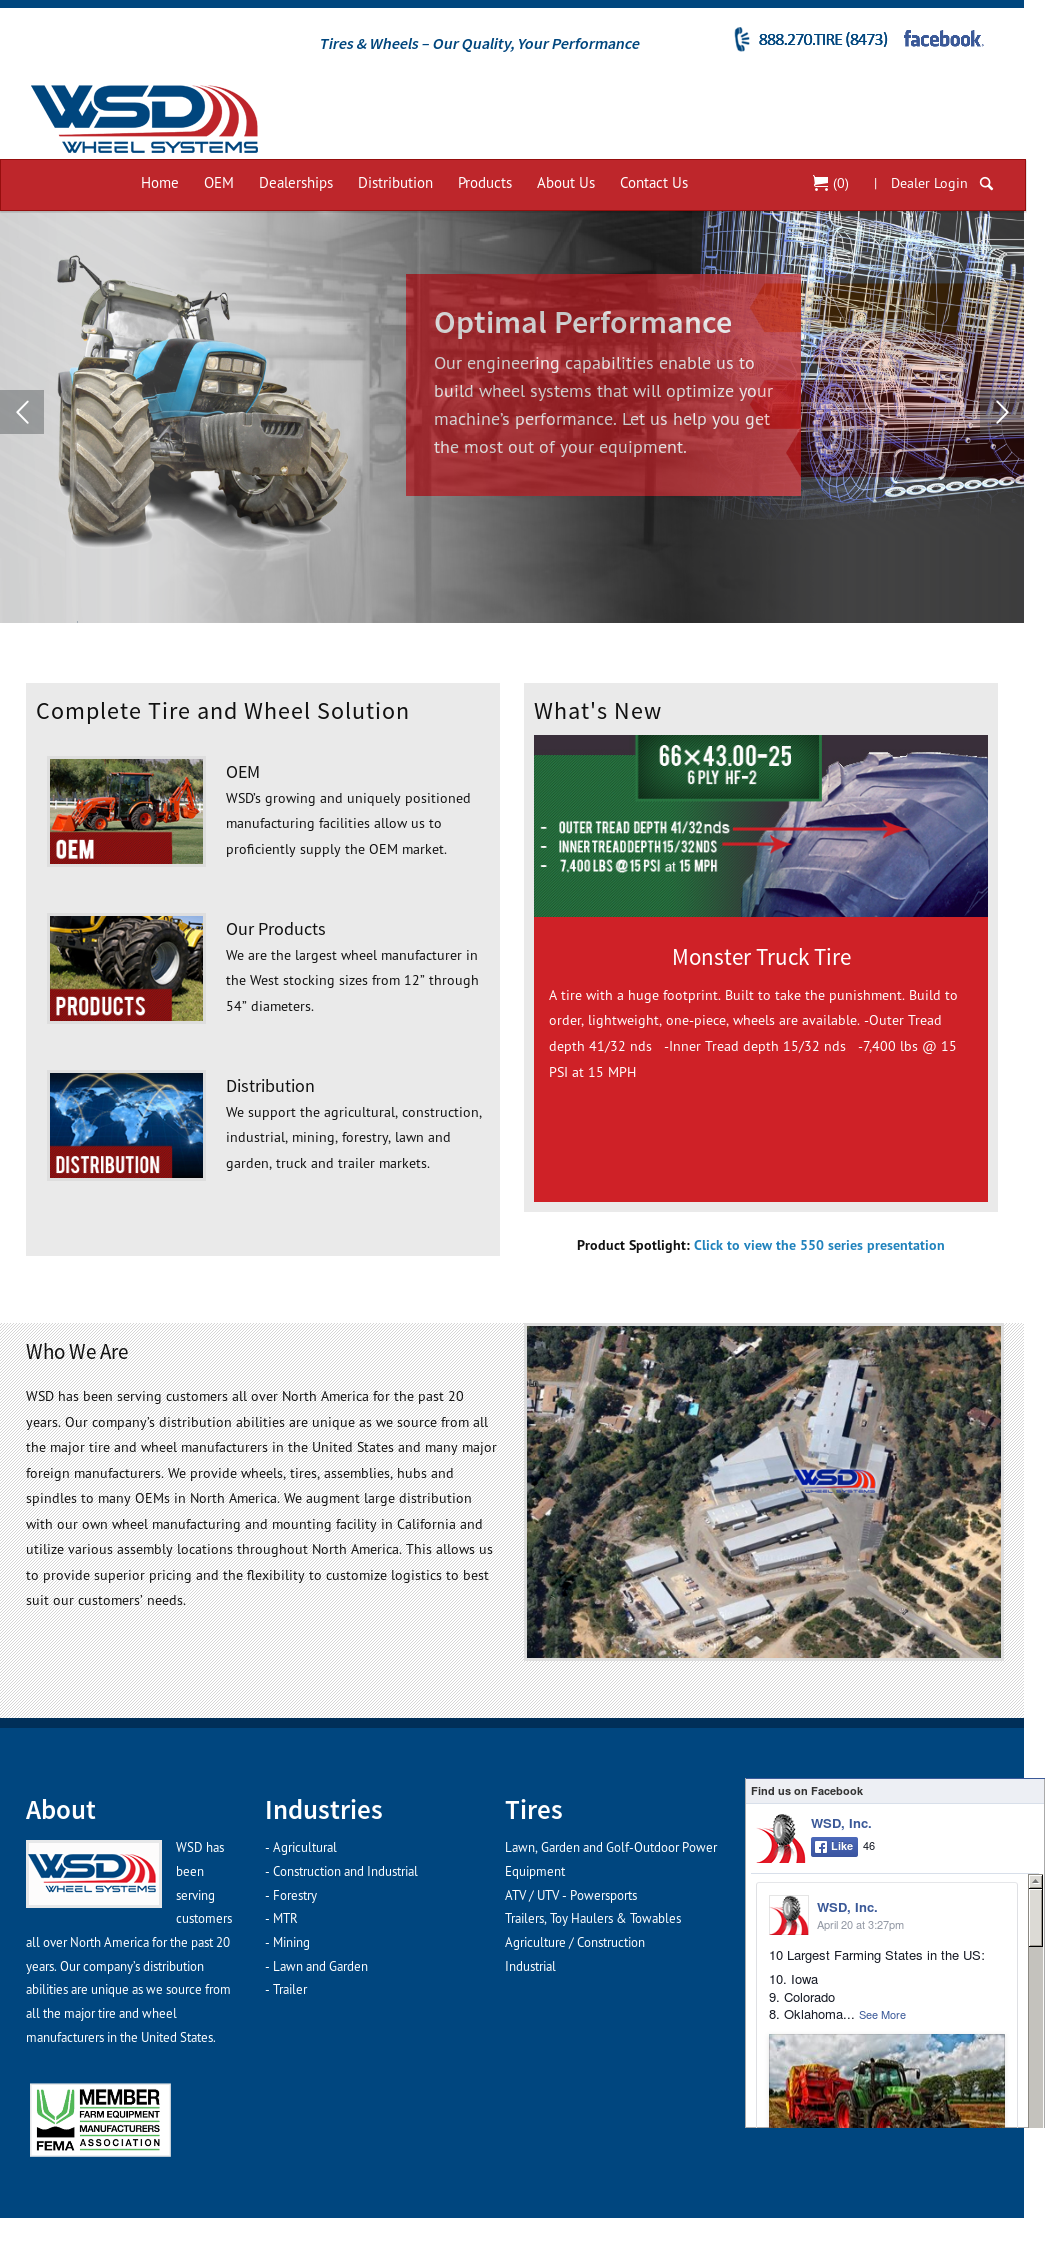 Wsd Wheel Competitors, Revenue and Employees - Owler Company Profile